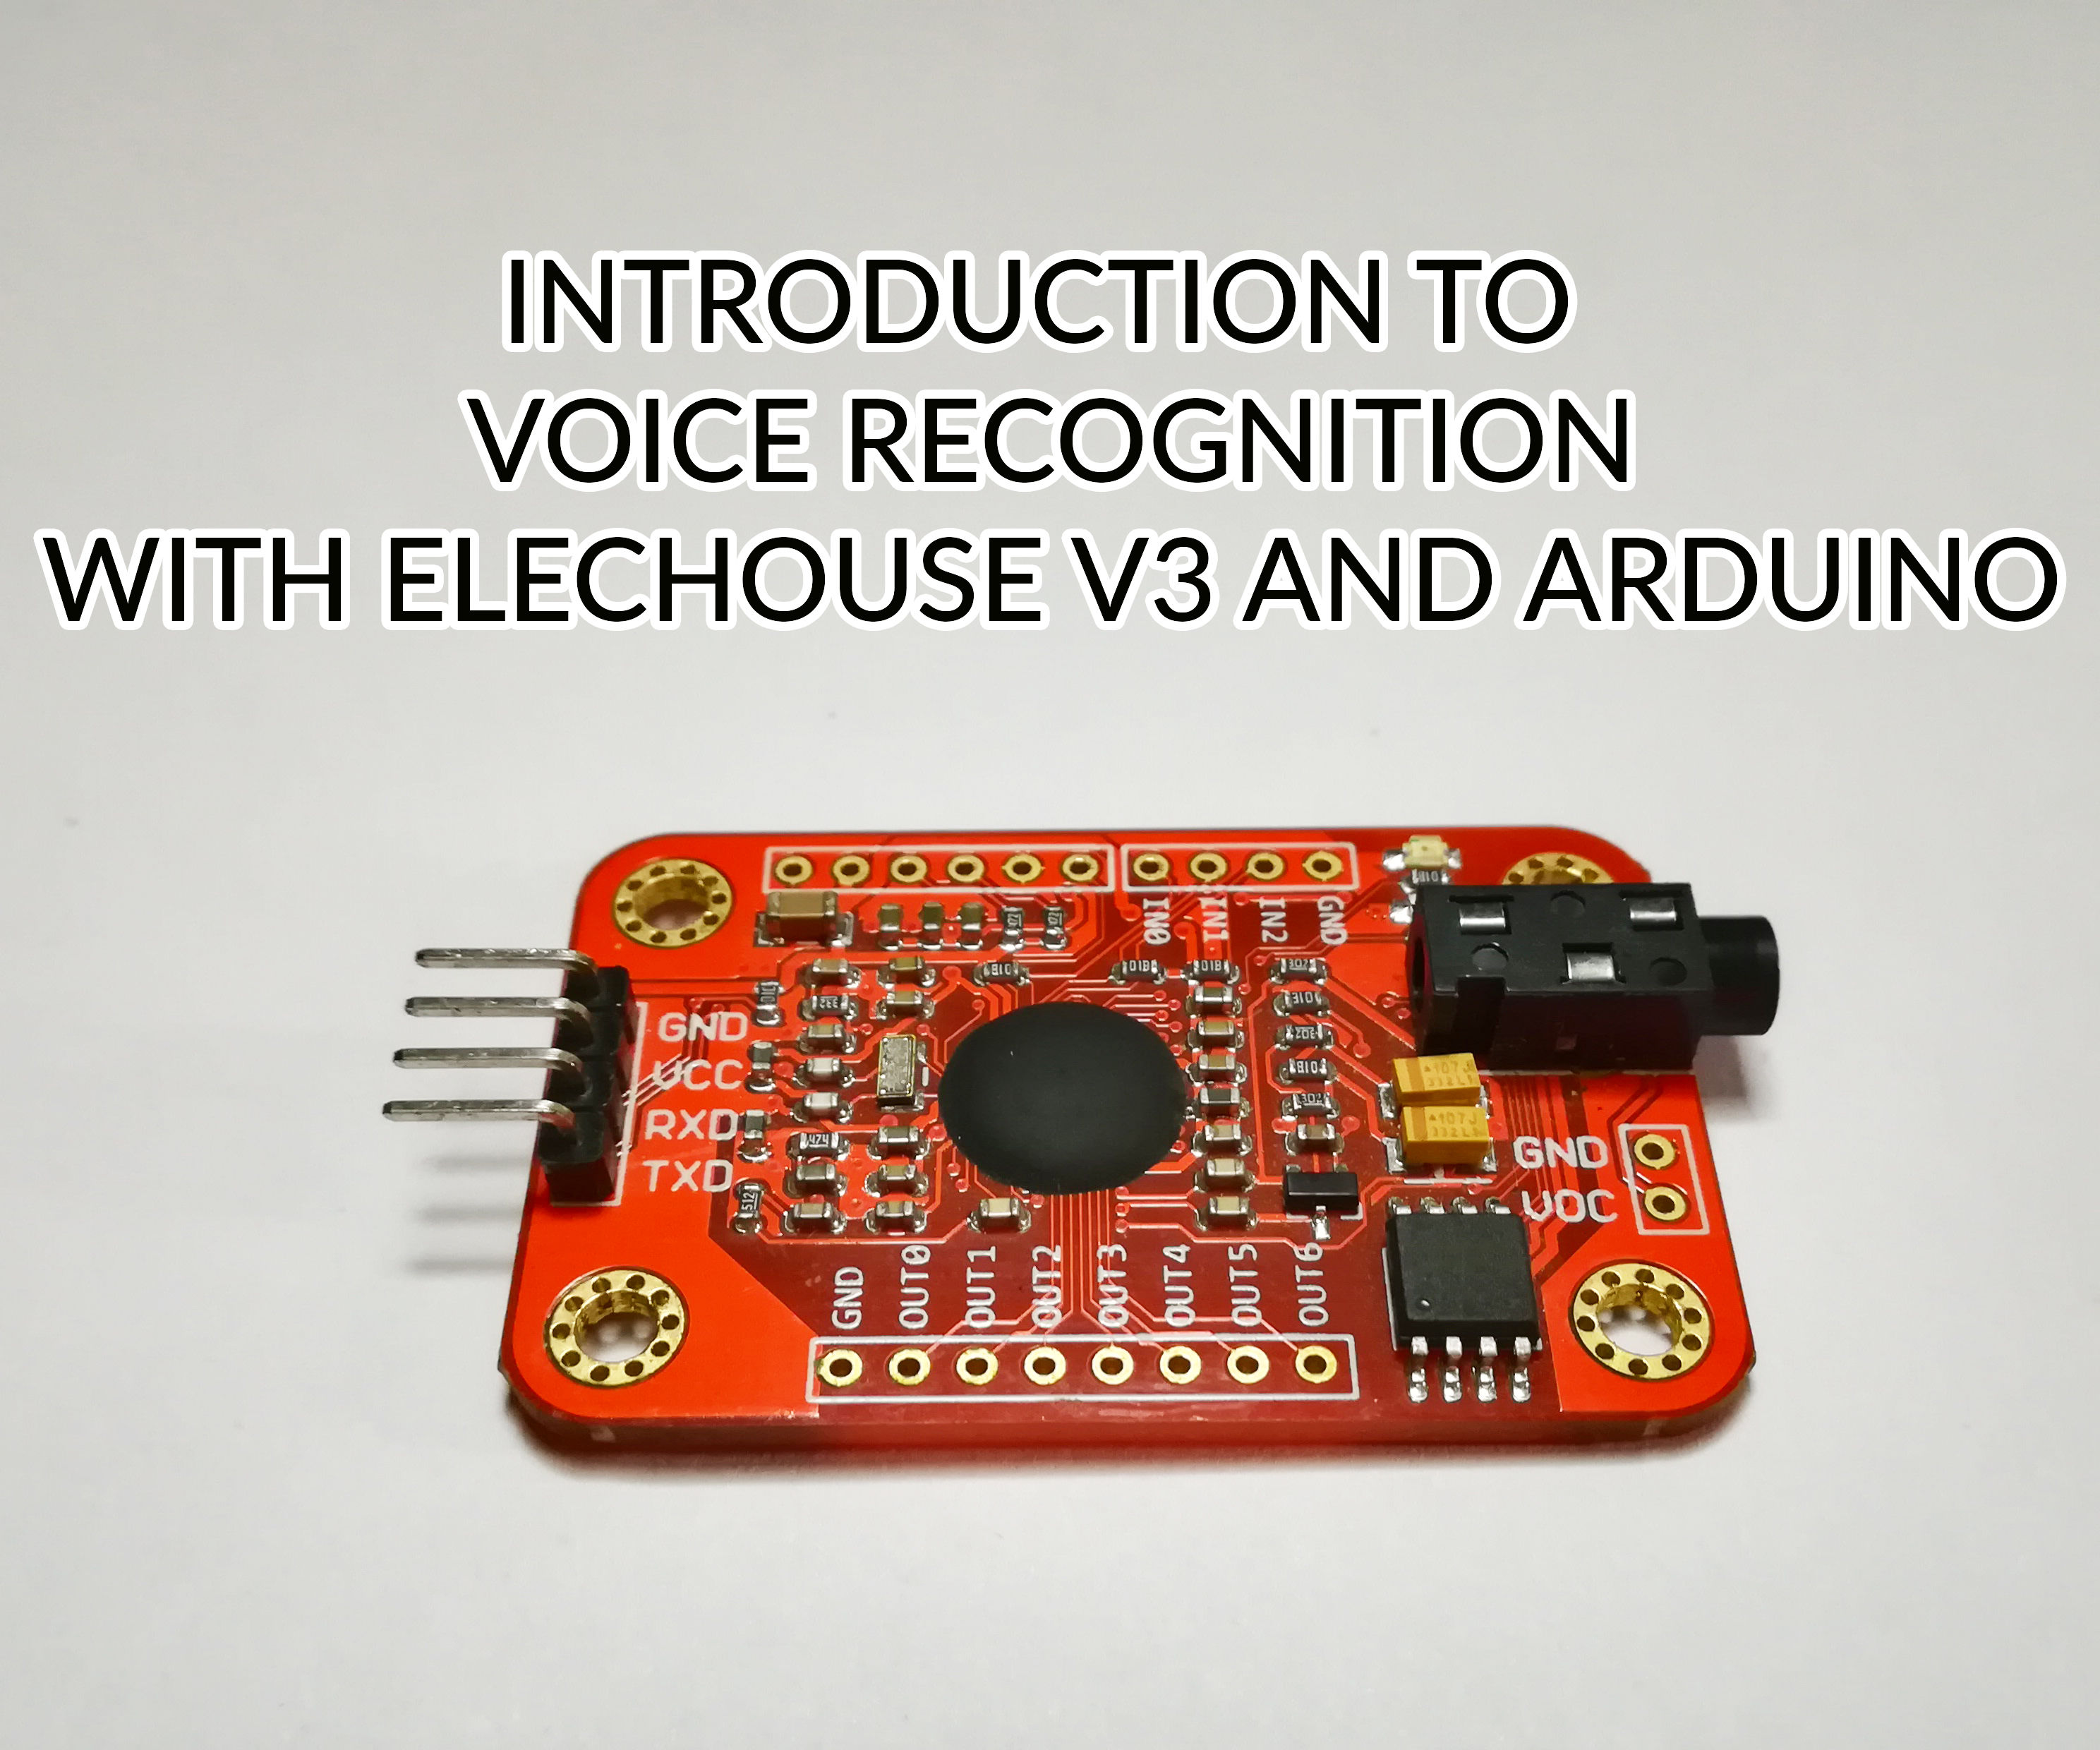 Introduction to Voice Recognition With Elechouse V3 and Arduino : 4